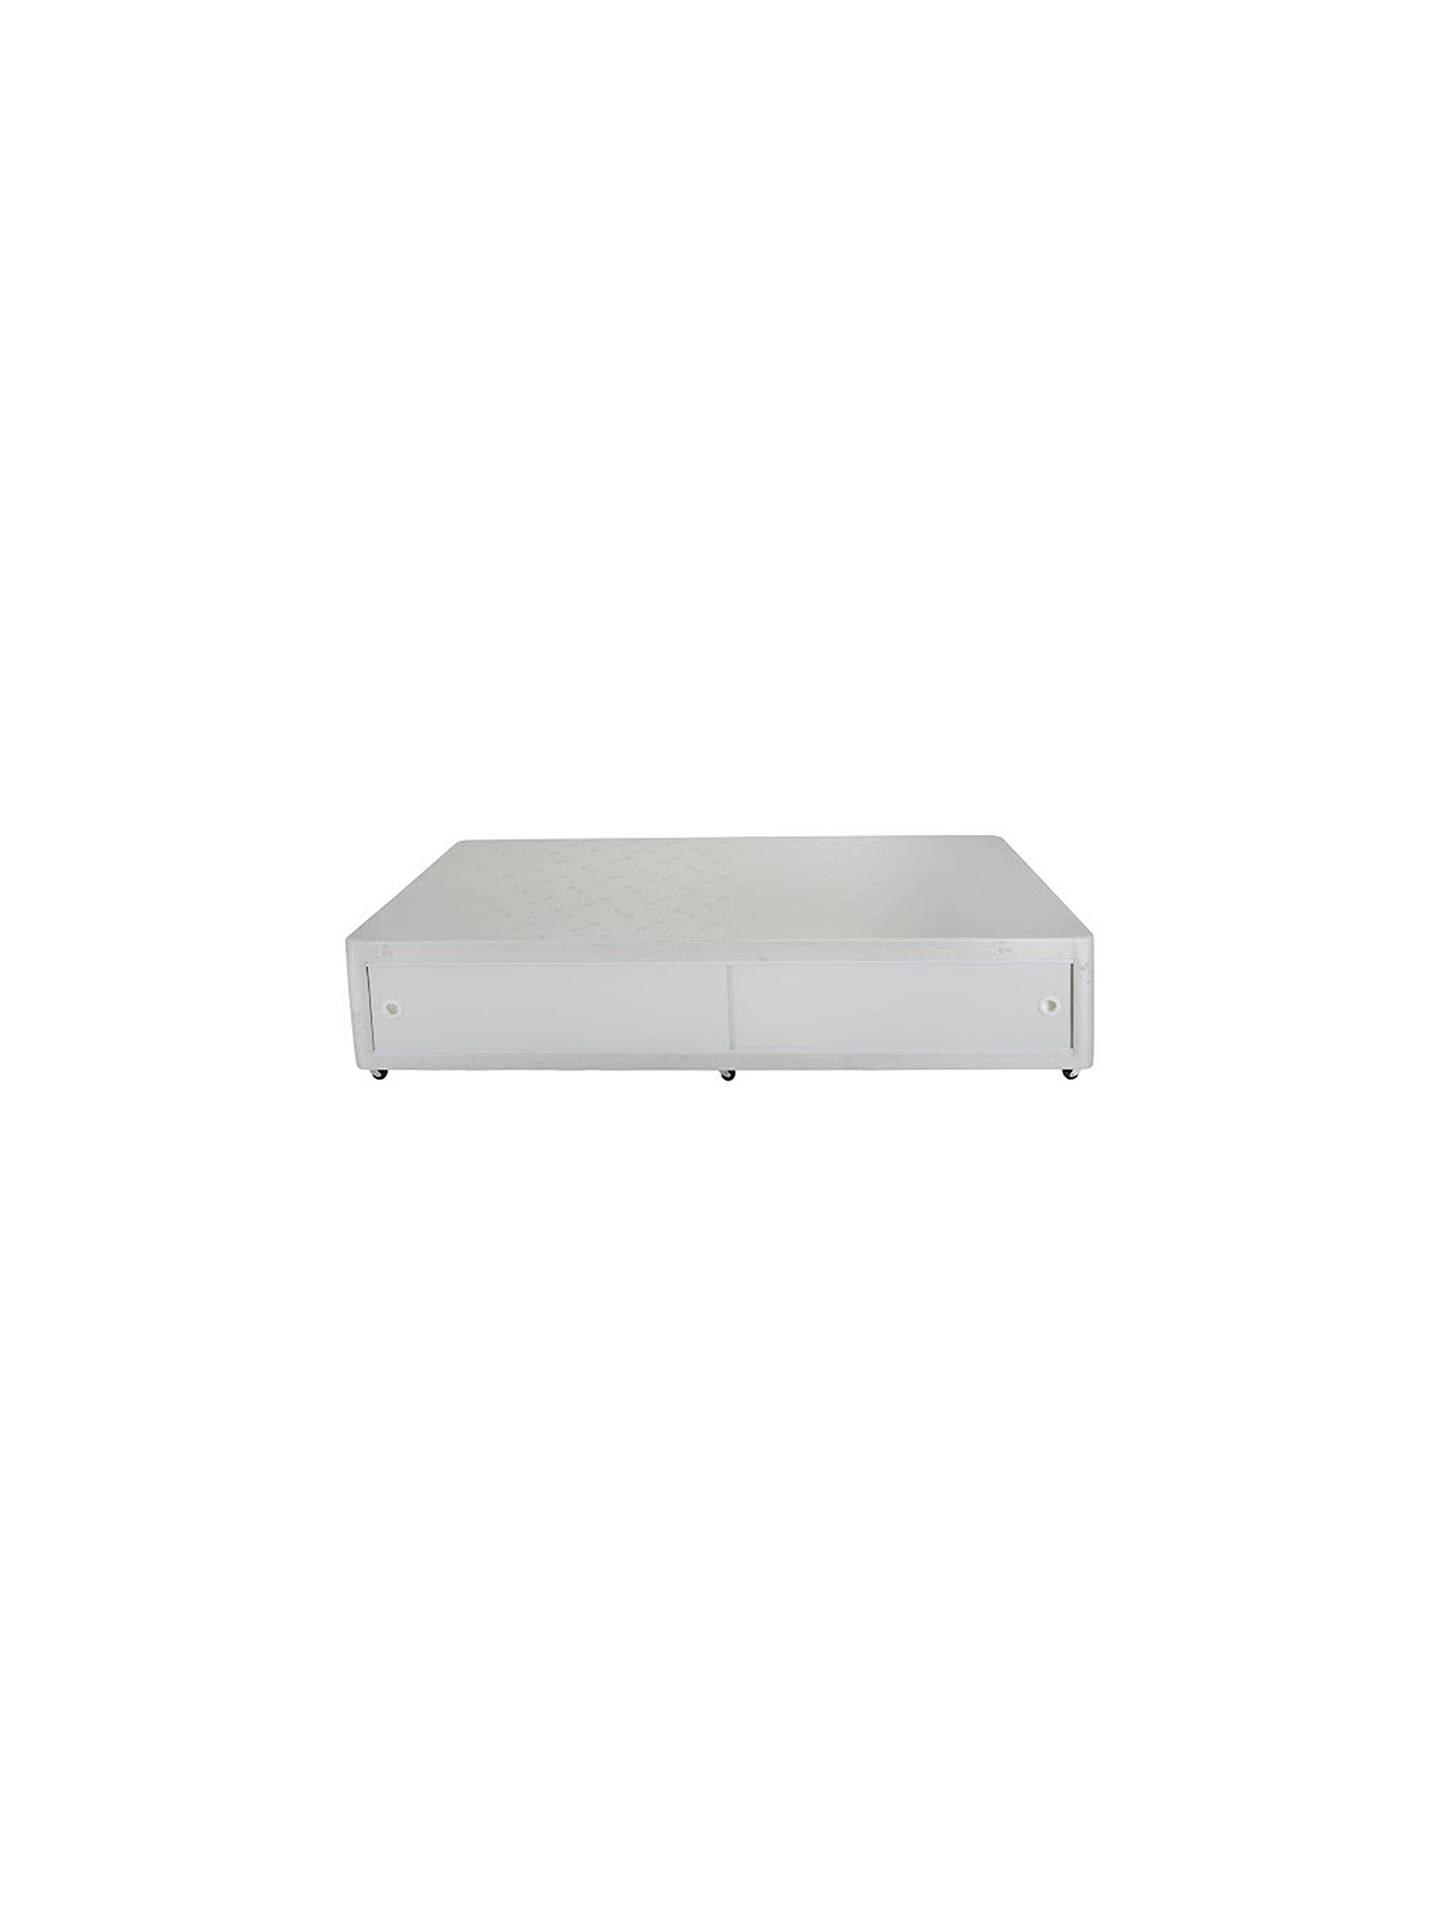 Buy John Lewis & Partners The Basics Collection Comfort Slide Store Divan Storage Bed and Mattress Set, Single Online at johnlewis.com